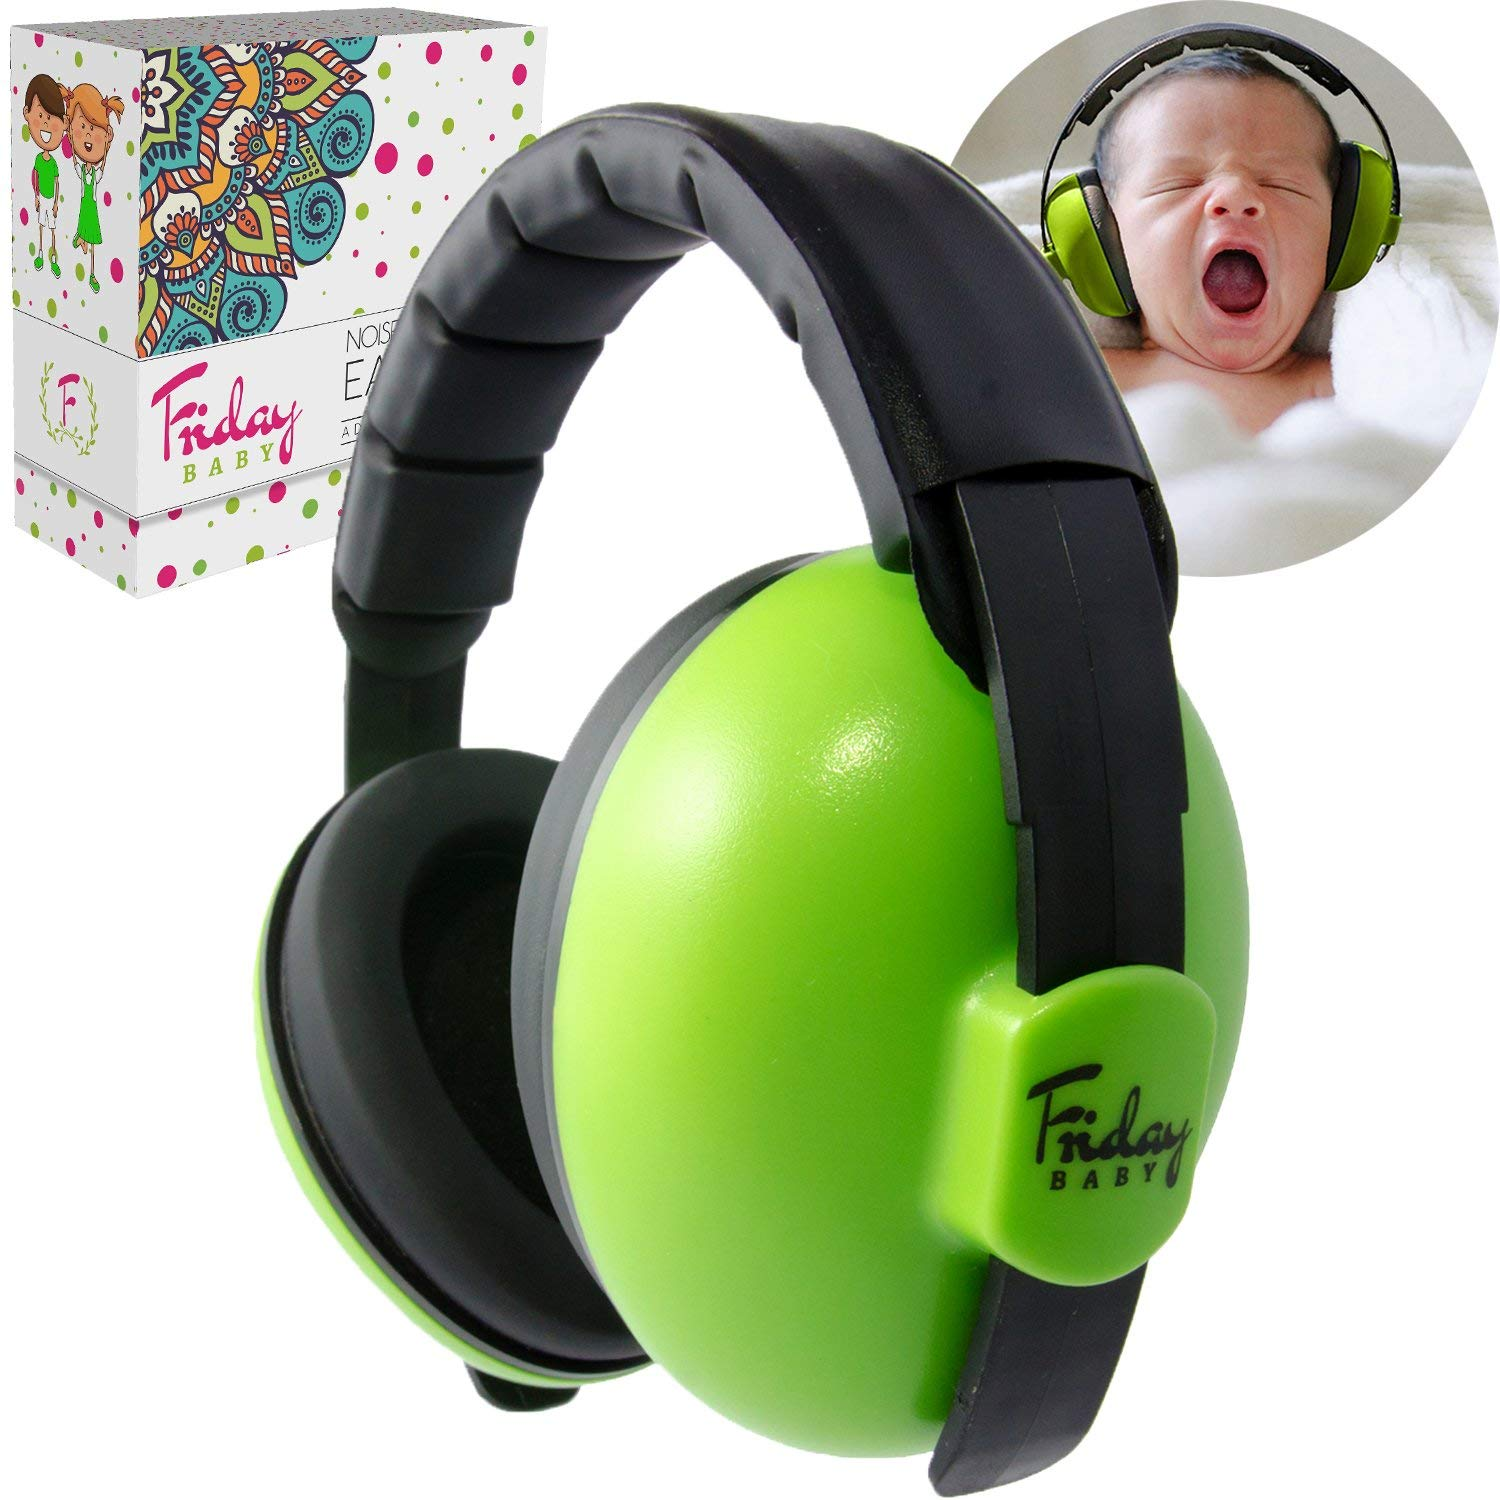 Fridaybaby Baby Ear Protection (0-2+ Years) - Comfortable and Adjustable Baby Ear Muffs Noise Protection for Infants & Newborns | Baby Headphones Noise Reduction for Concerts, Fireworks & Travels by Friday Baby (Image #1)